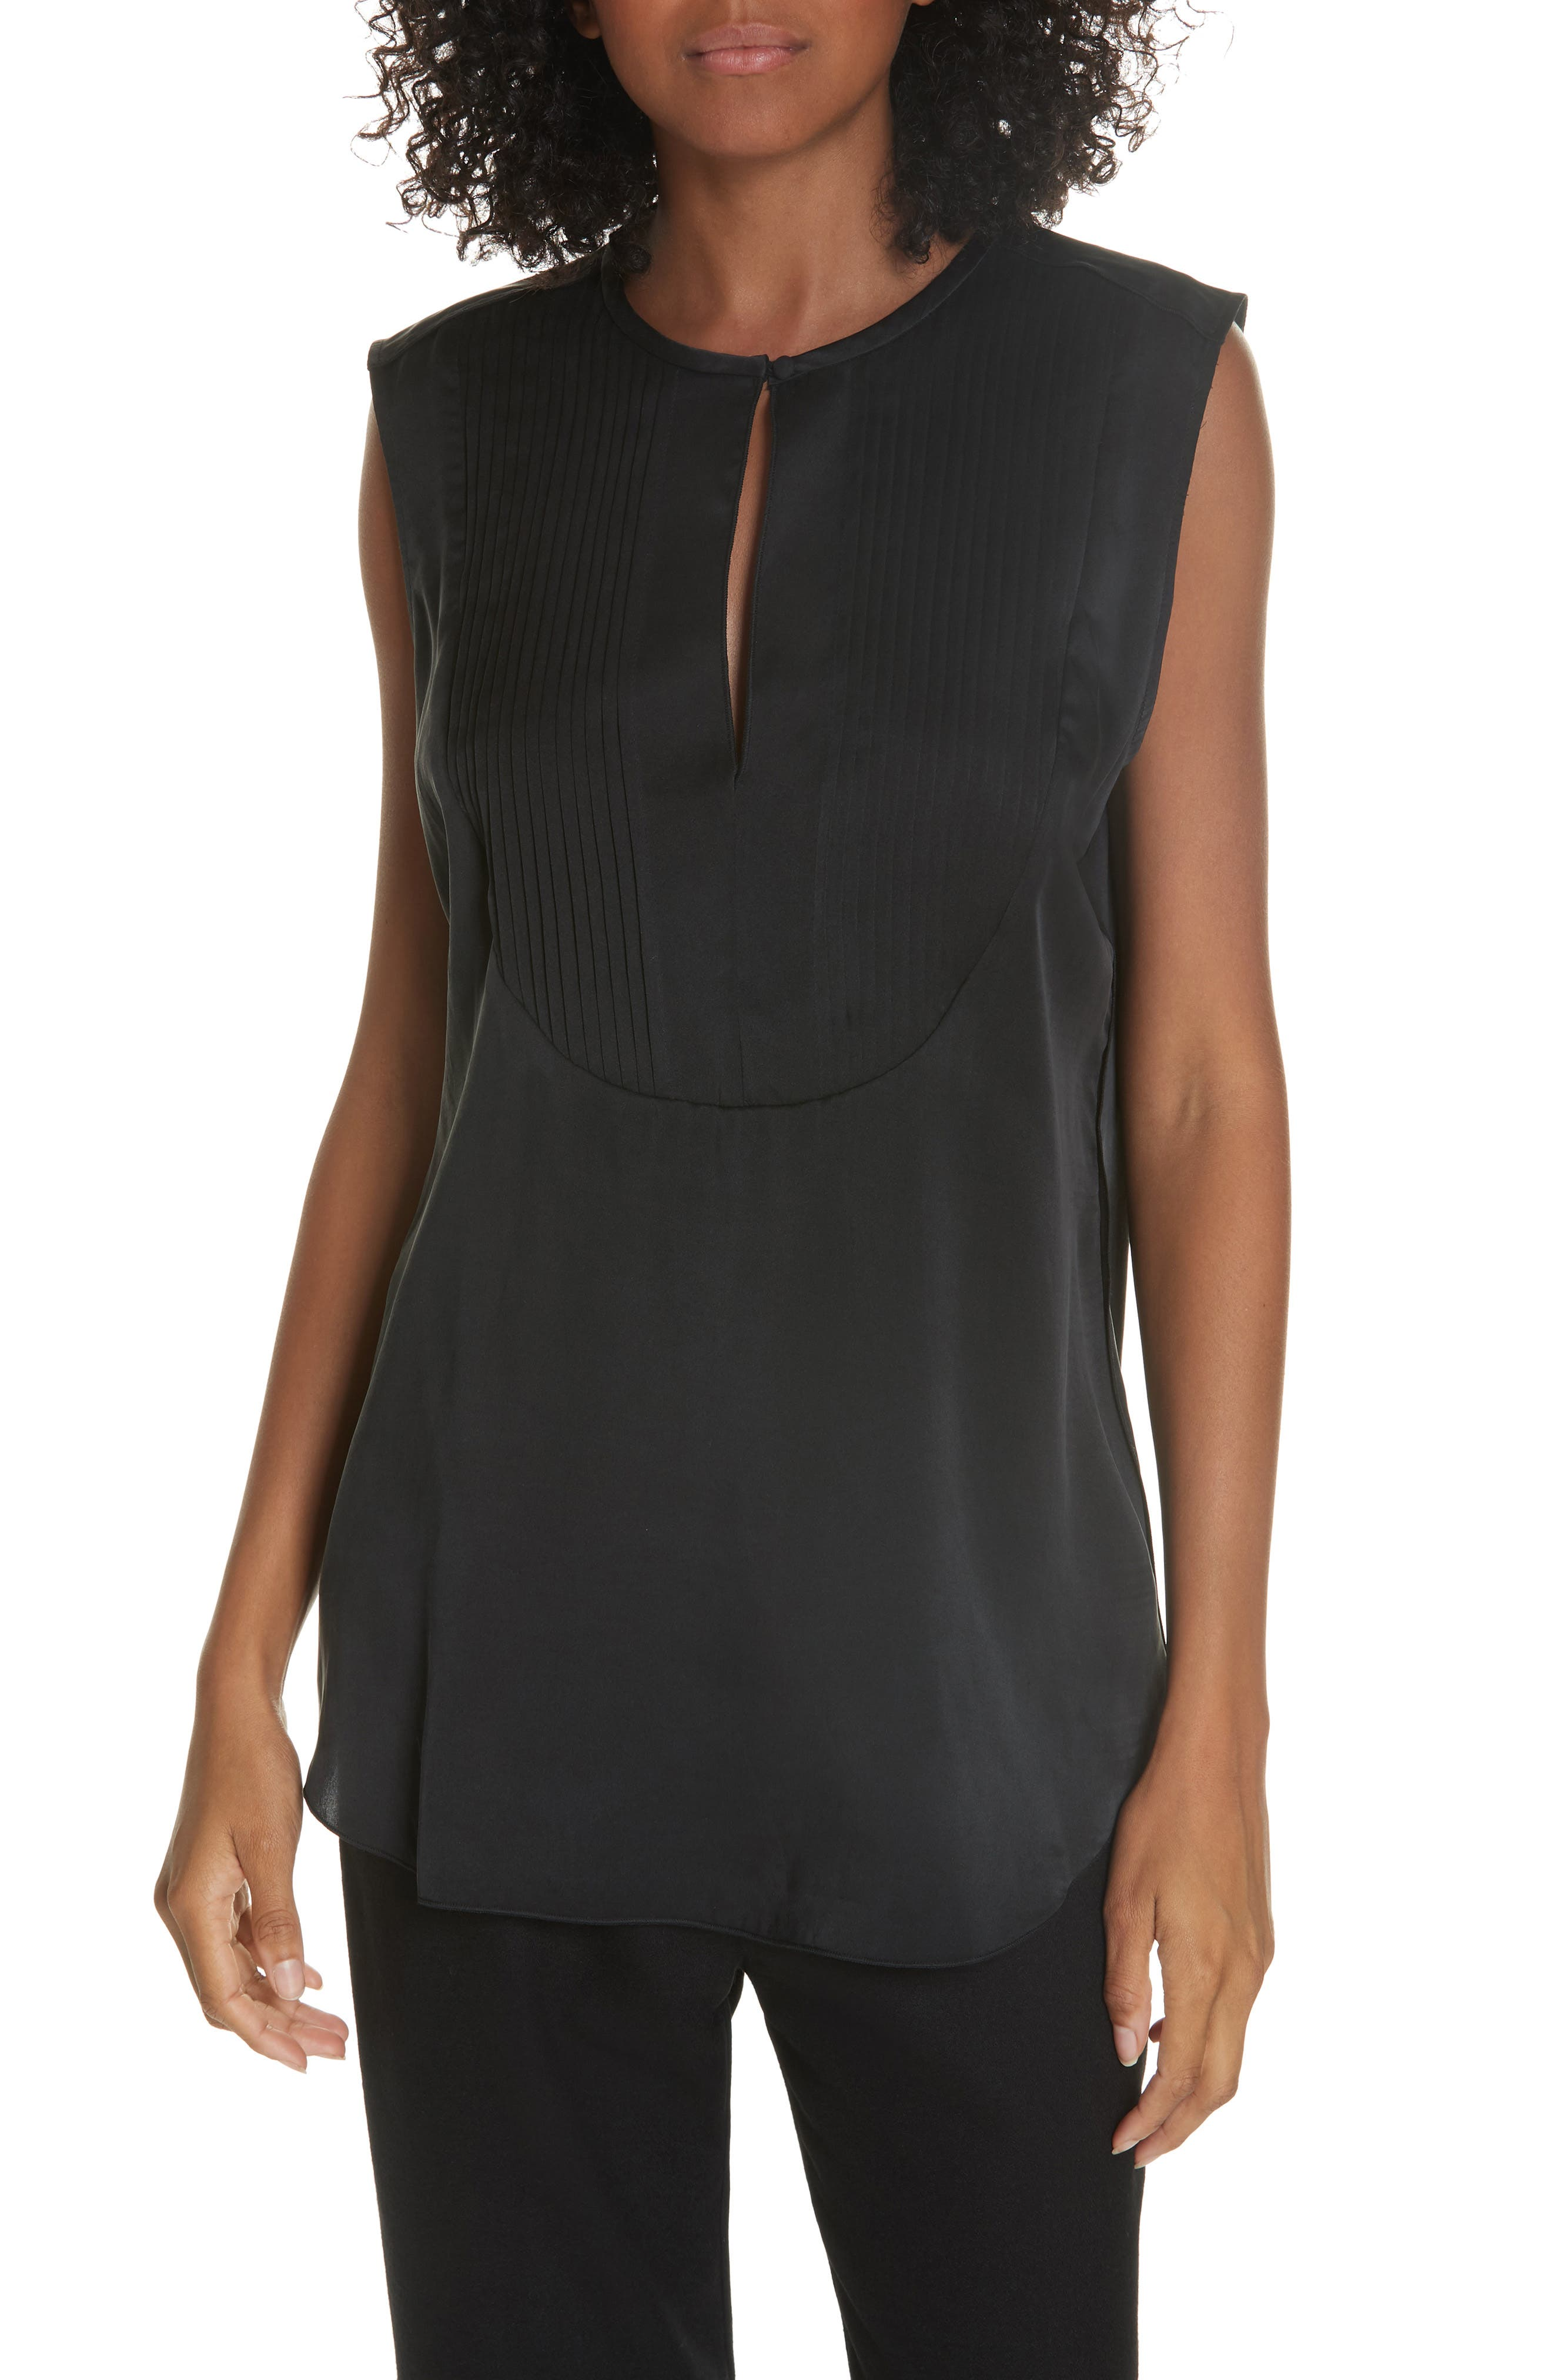 Vienna Pintucked Satin Top in Black from EQUIPMENT